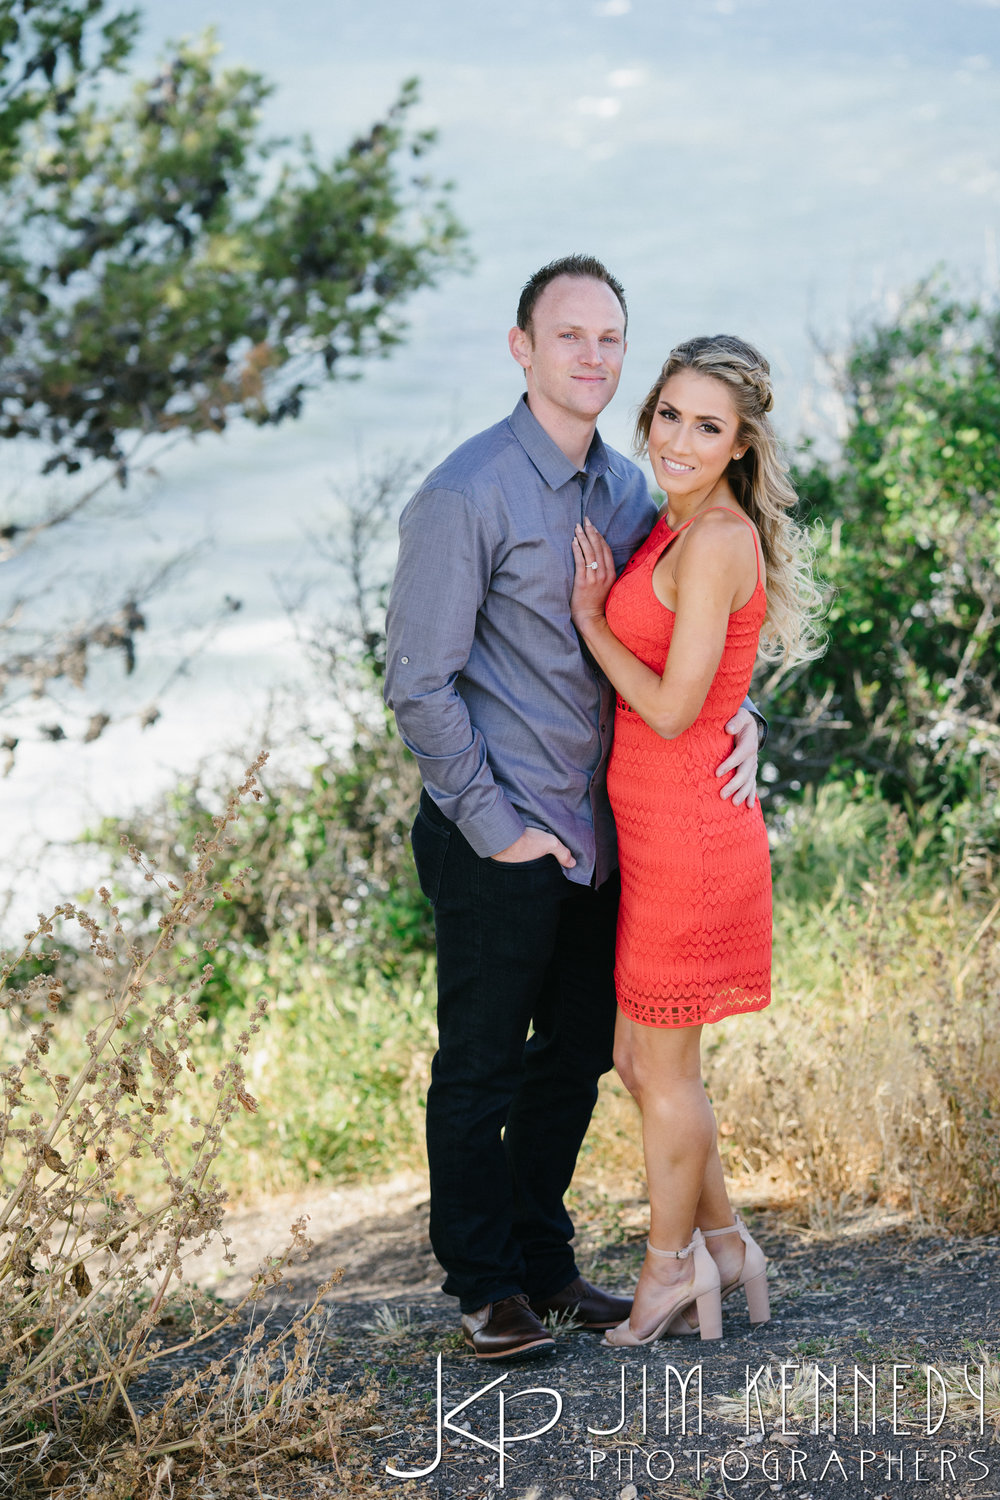 jim-kennedy-photogaphers-palos-verdes-engagement-session_-3.jpg